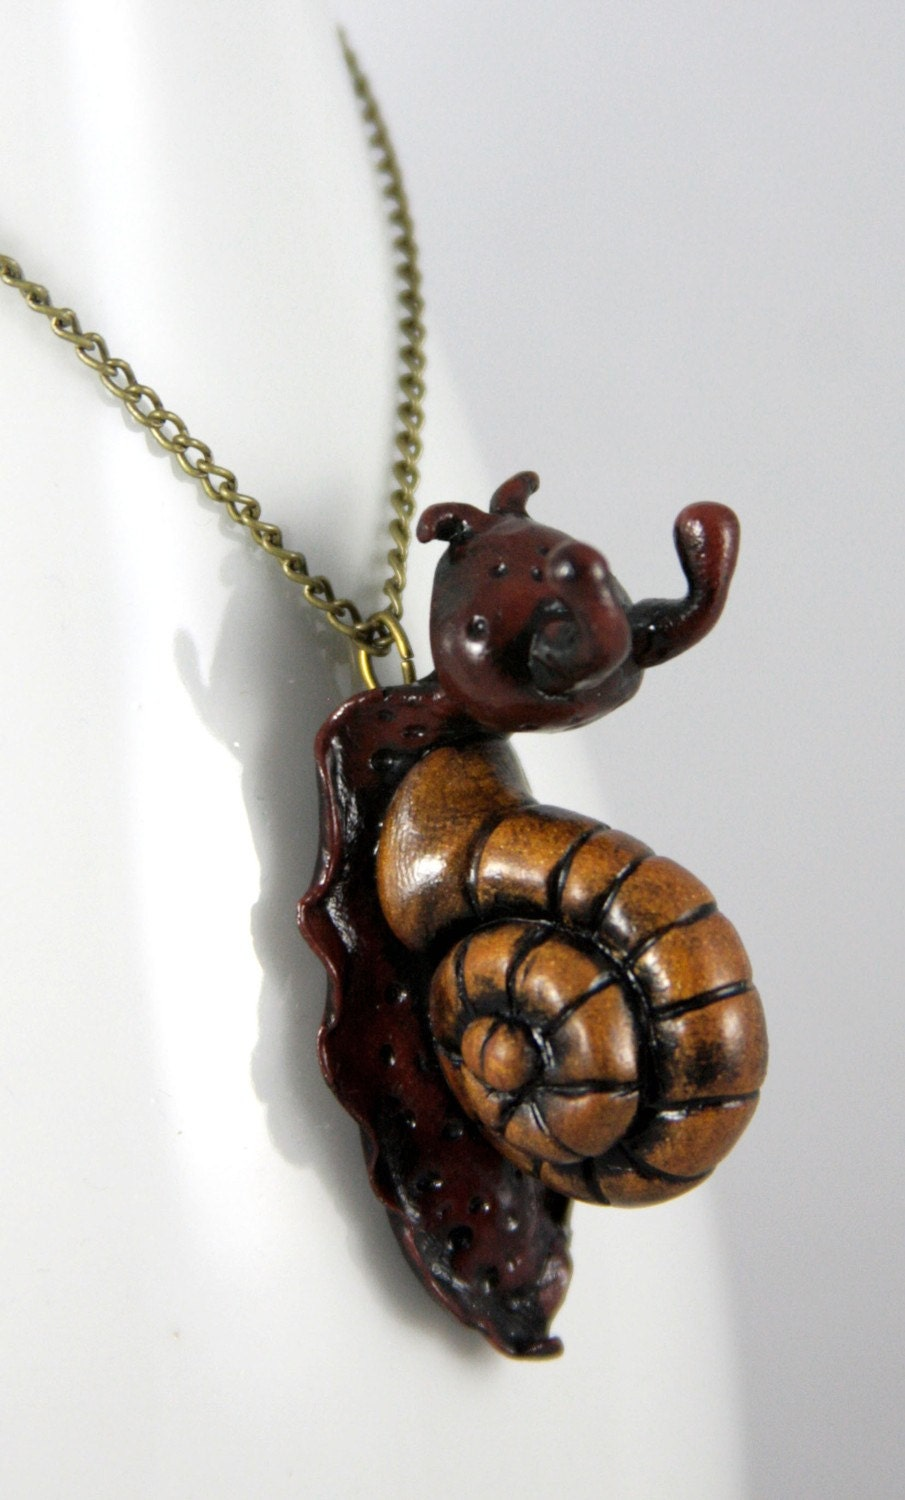 Dark Garden Snail Necklace Jewelry Handmade